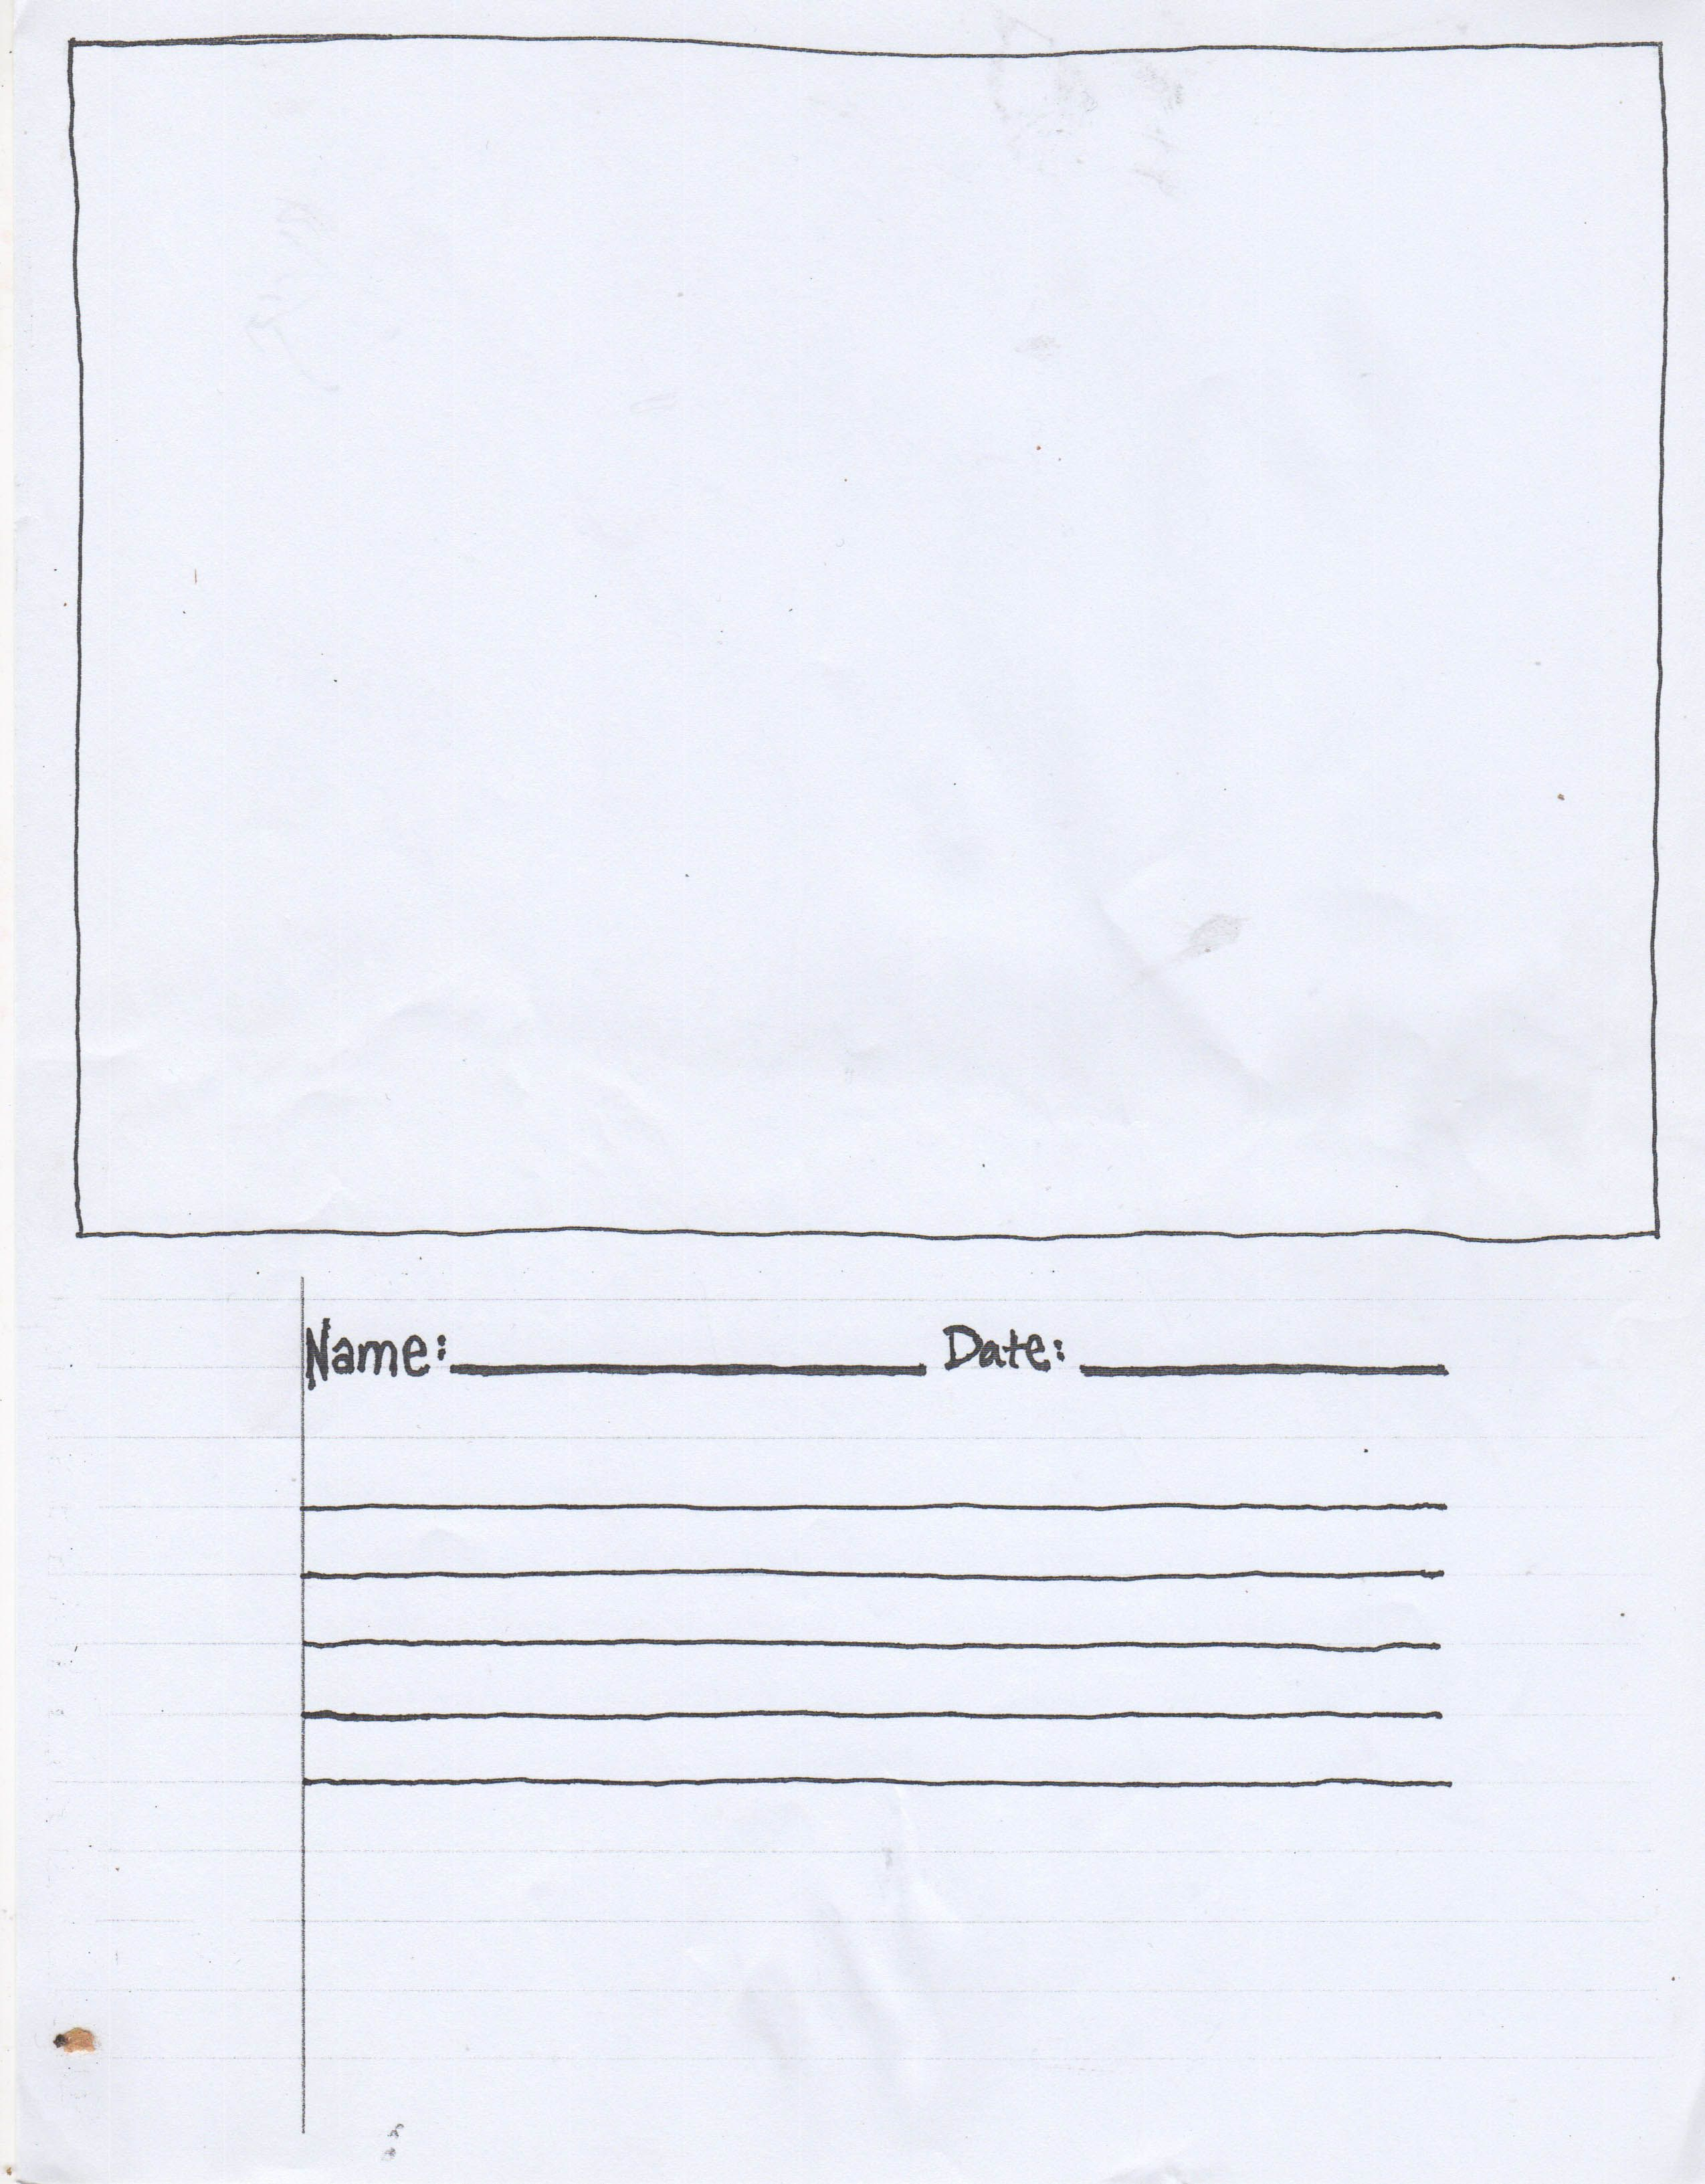 Story Board Worksheet For Making Projects K12